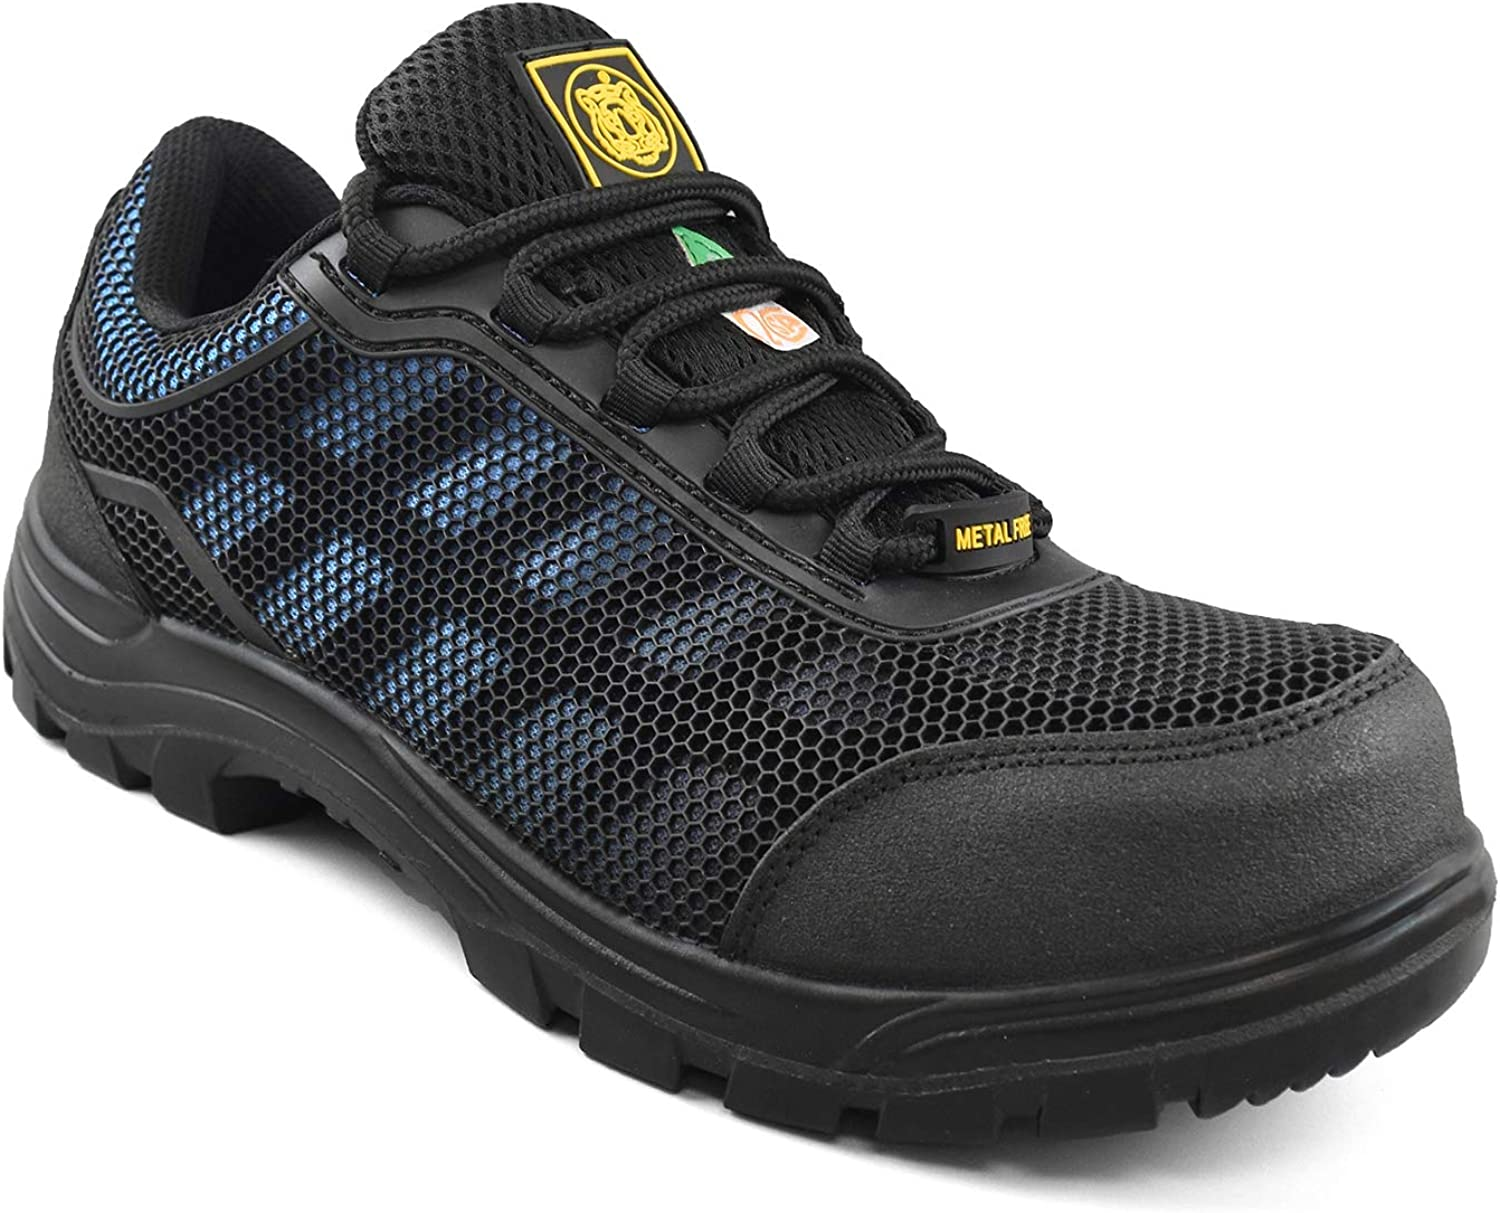 Tiger Men's Safety Shoes CSA Ultralight